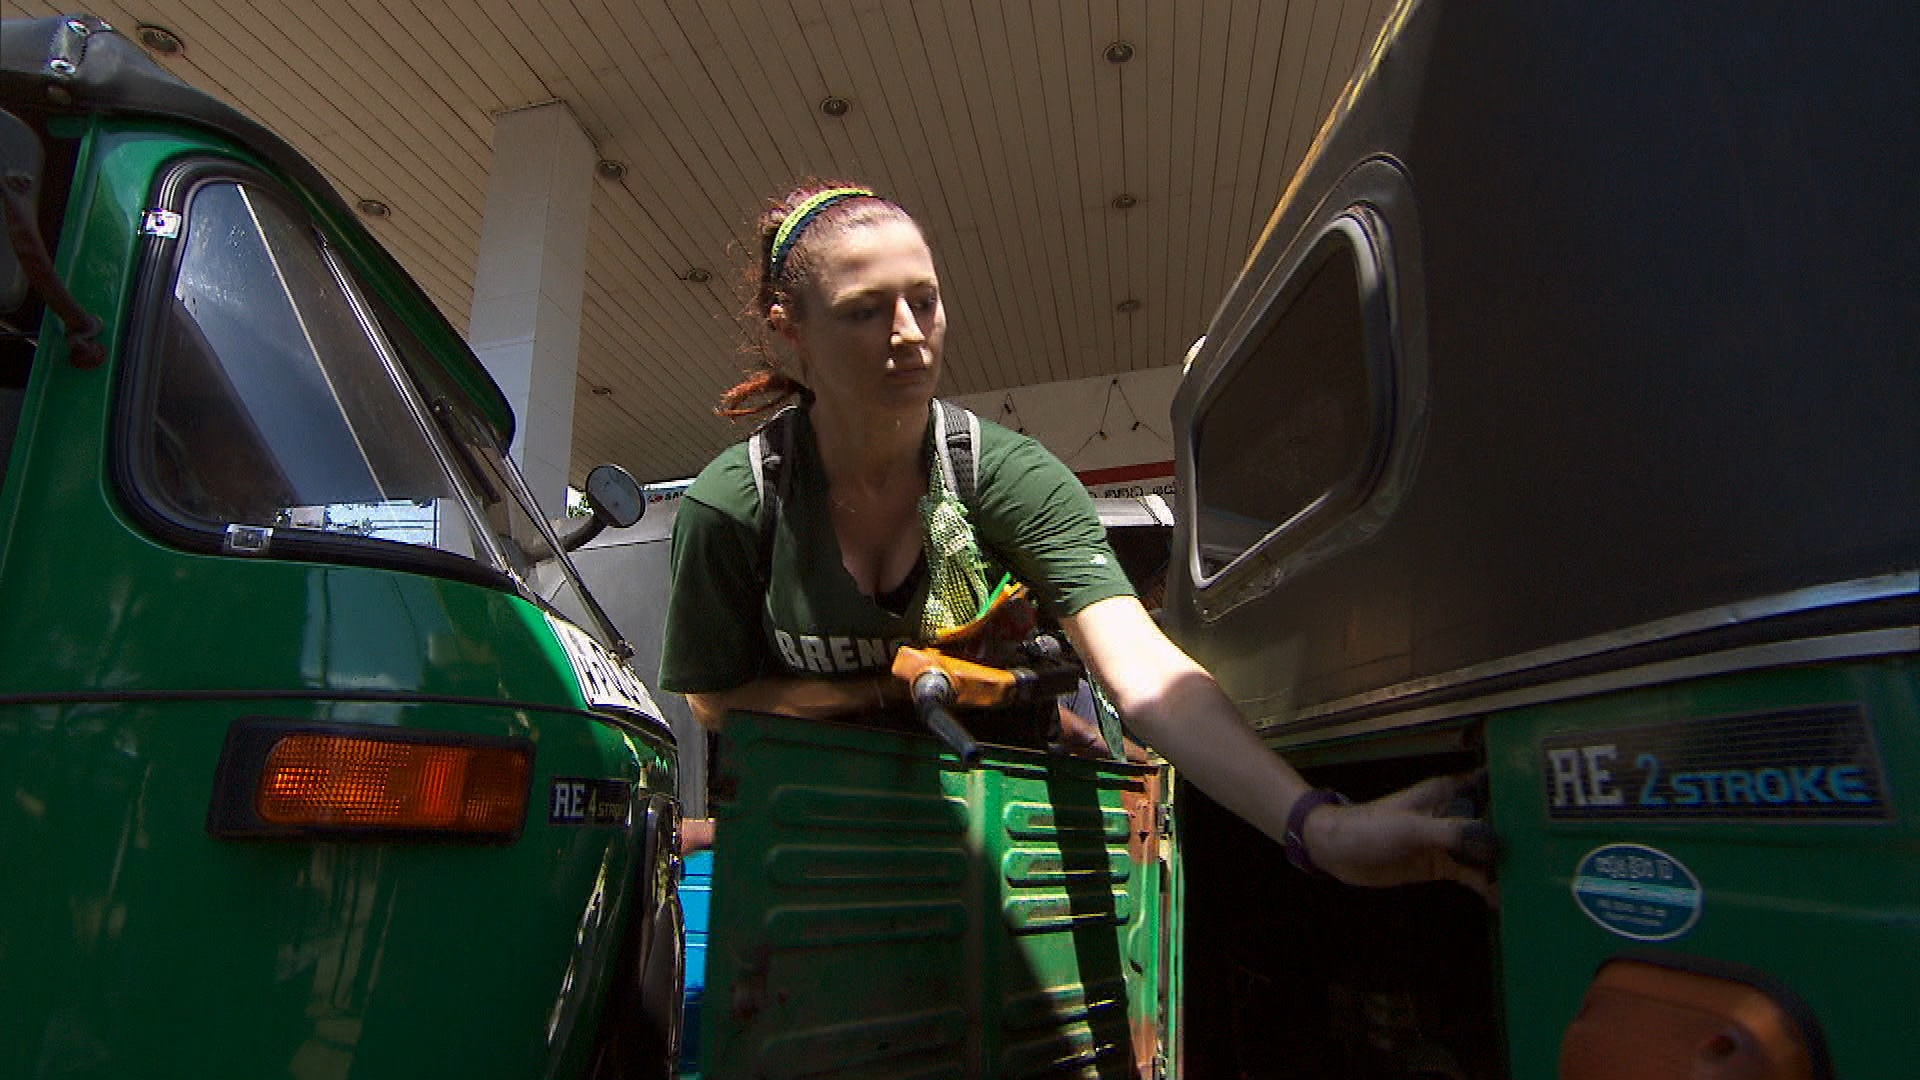 Rachel filling up gas in Season 24 Episode 6